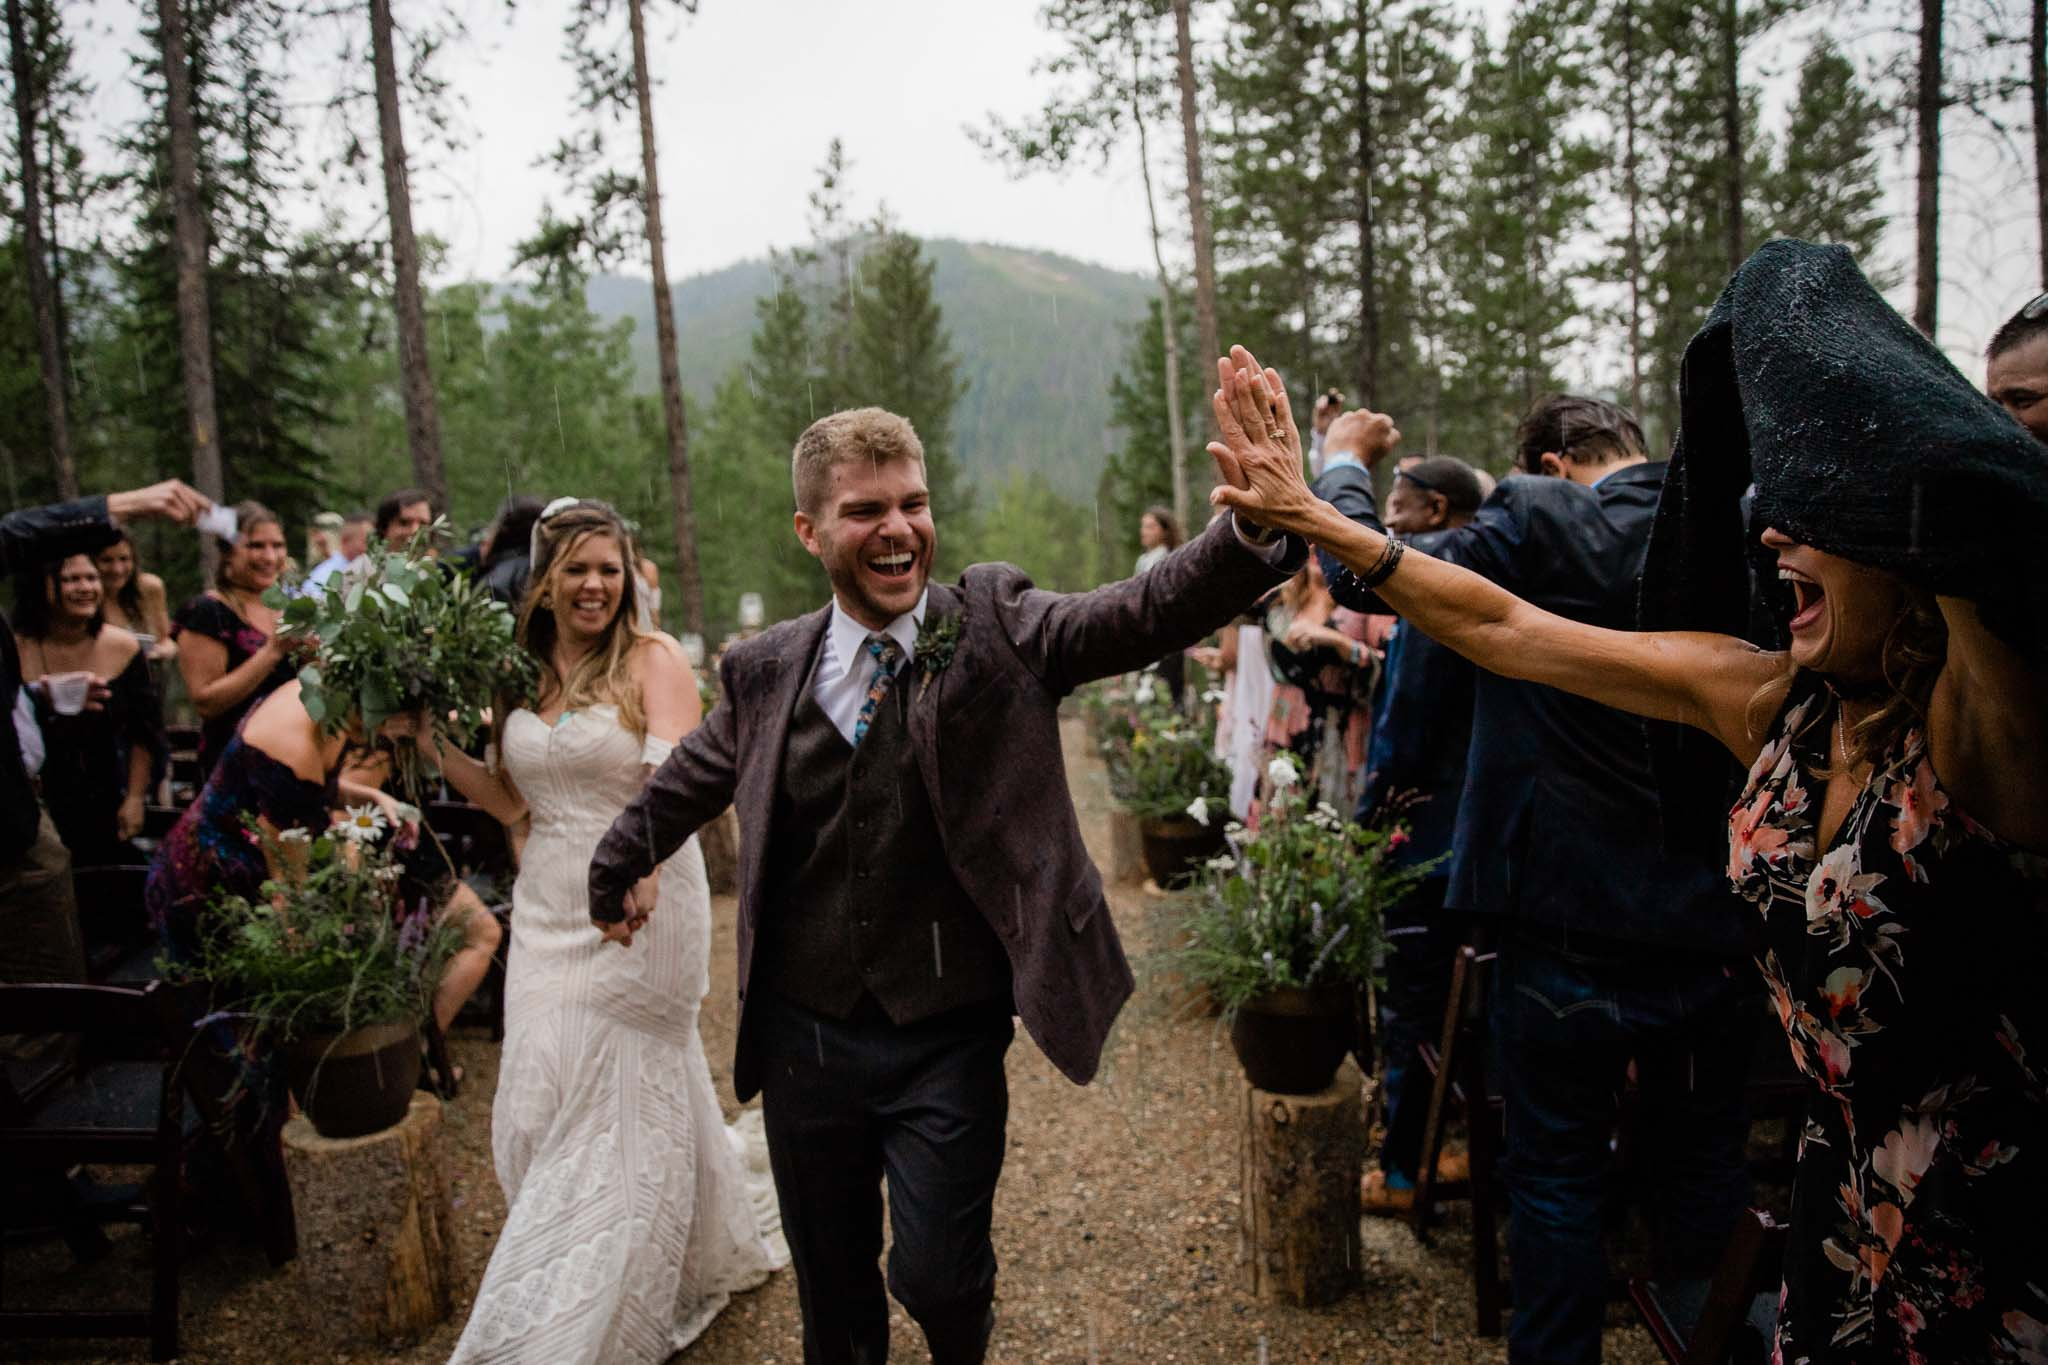 Groom high fives guest during recessional after rainy wedding ceremony in Winter Park, Colorado